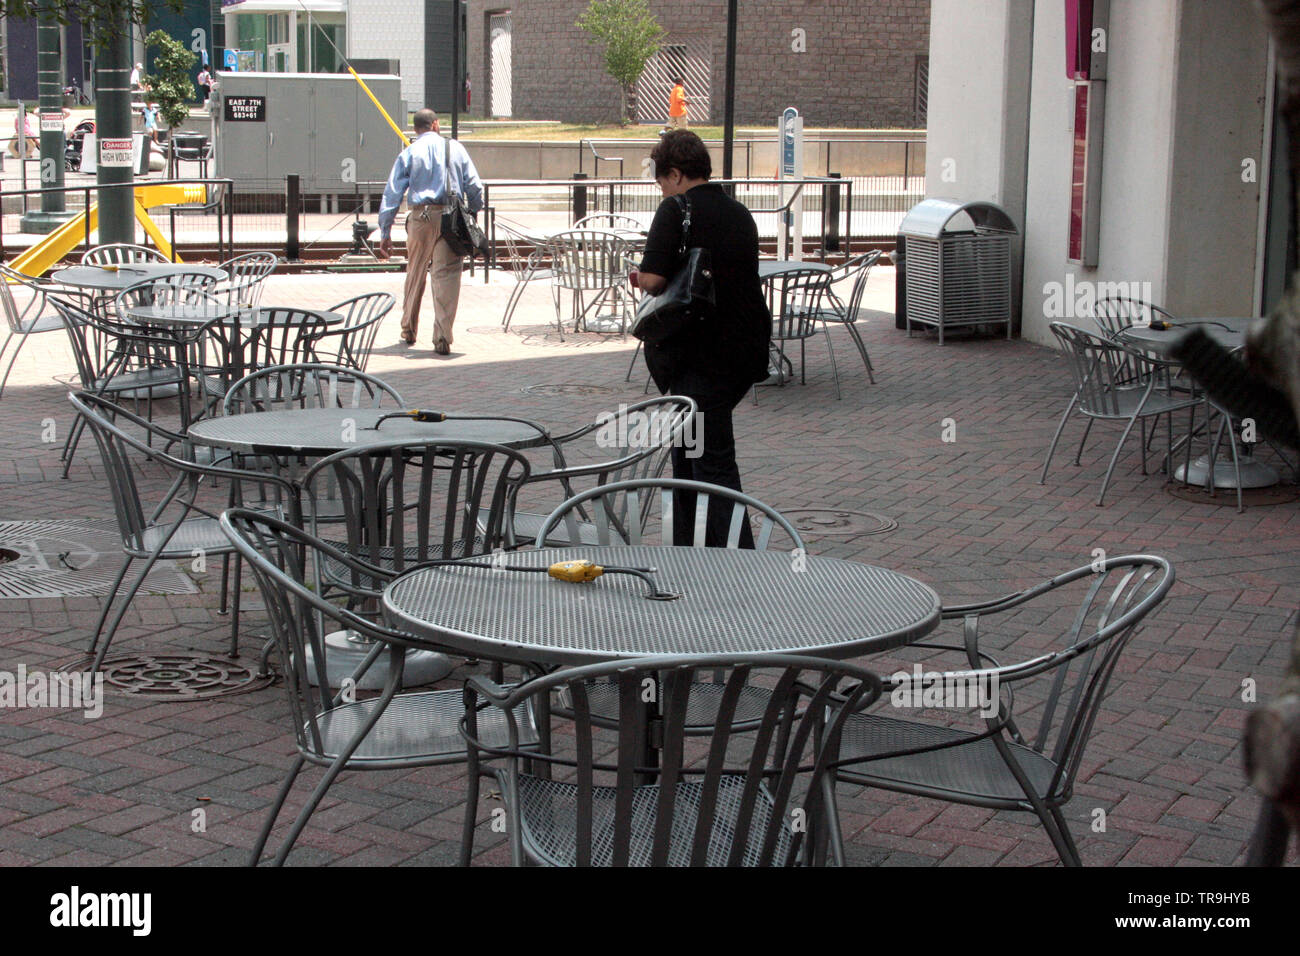 Restaurant Tables And Chairs Secured During Closing Hours In